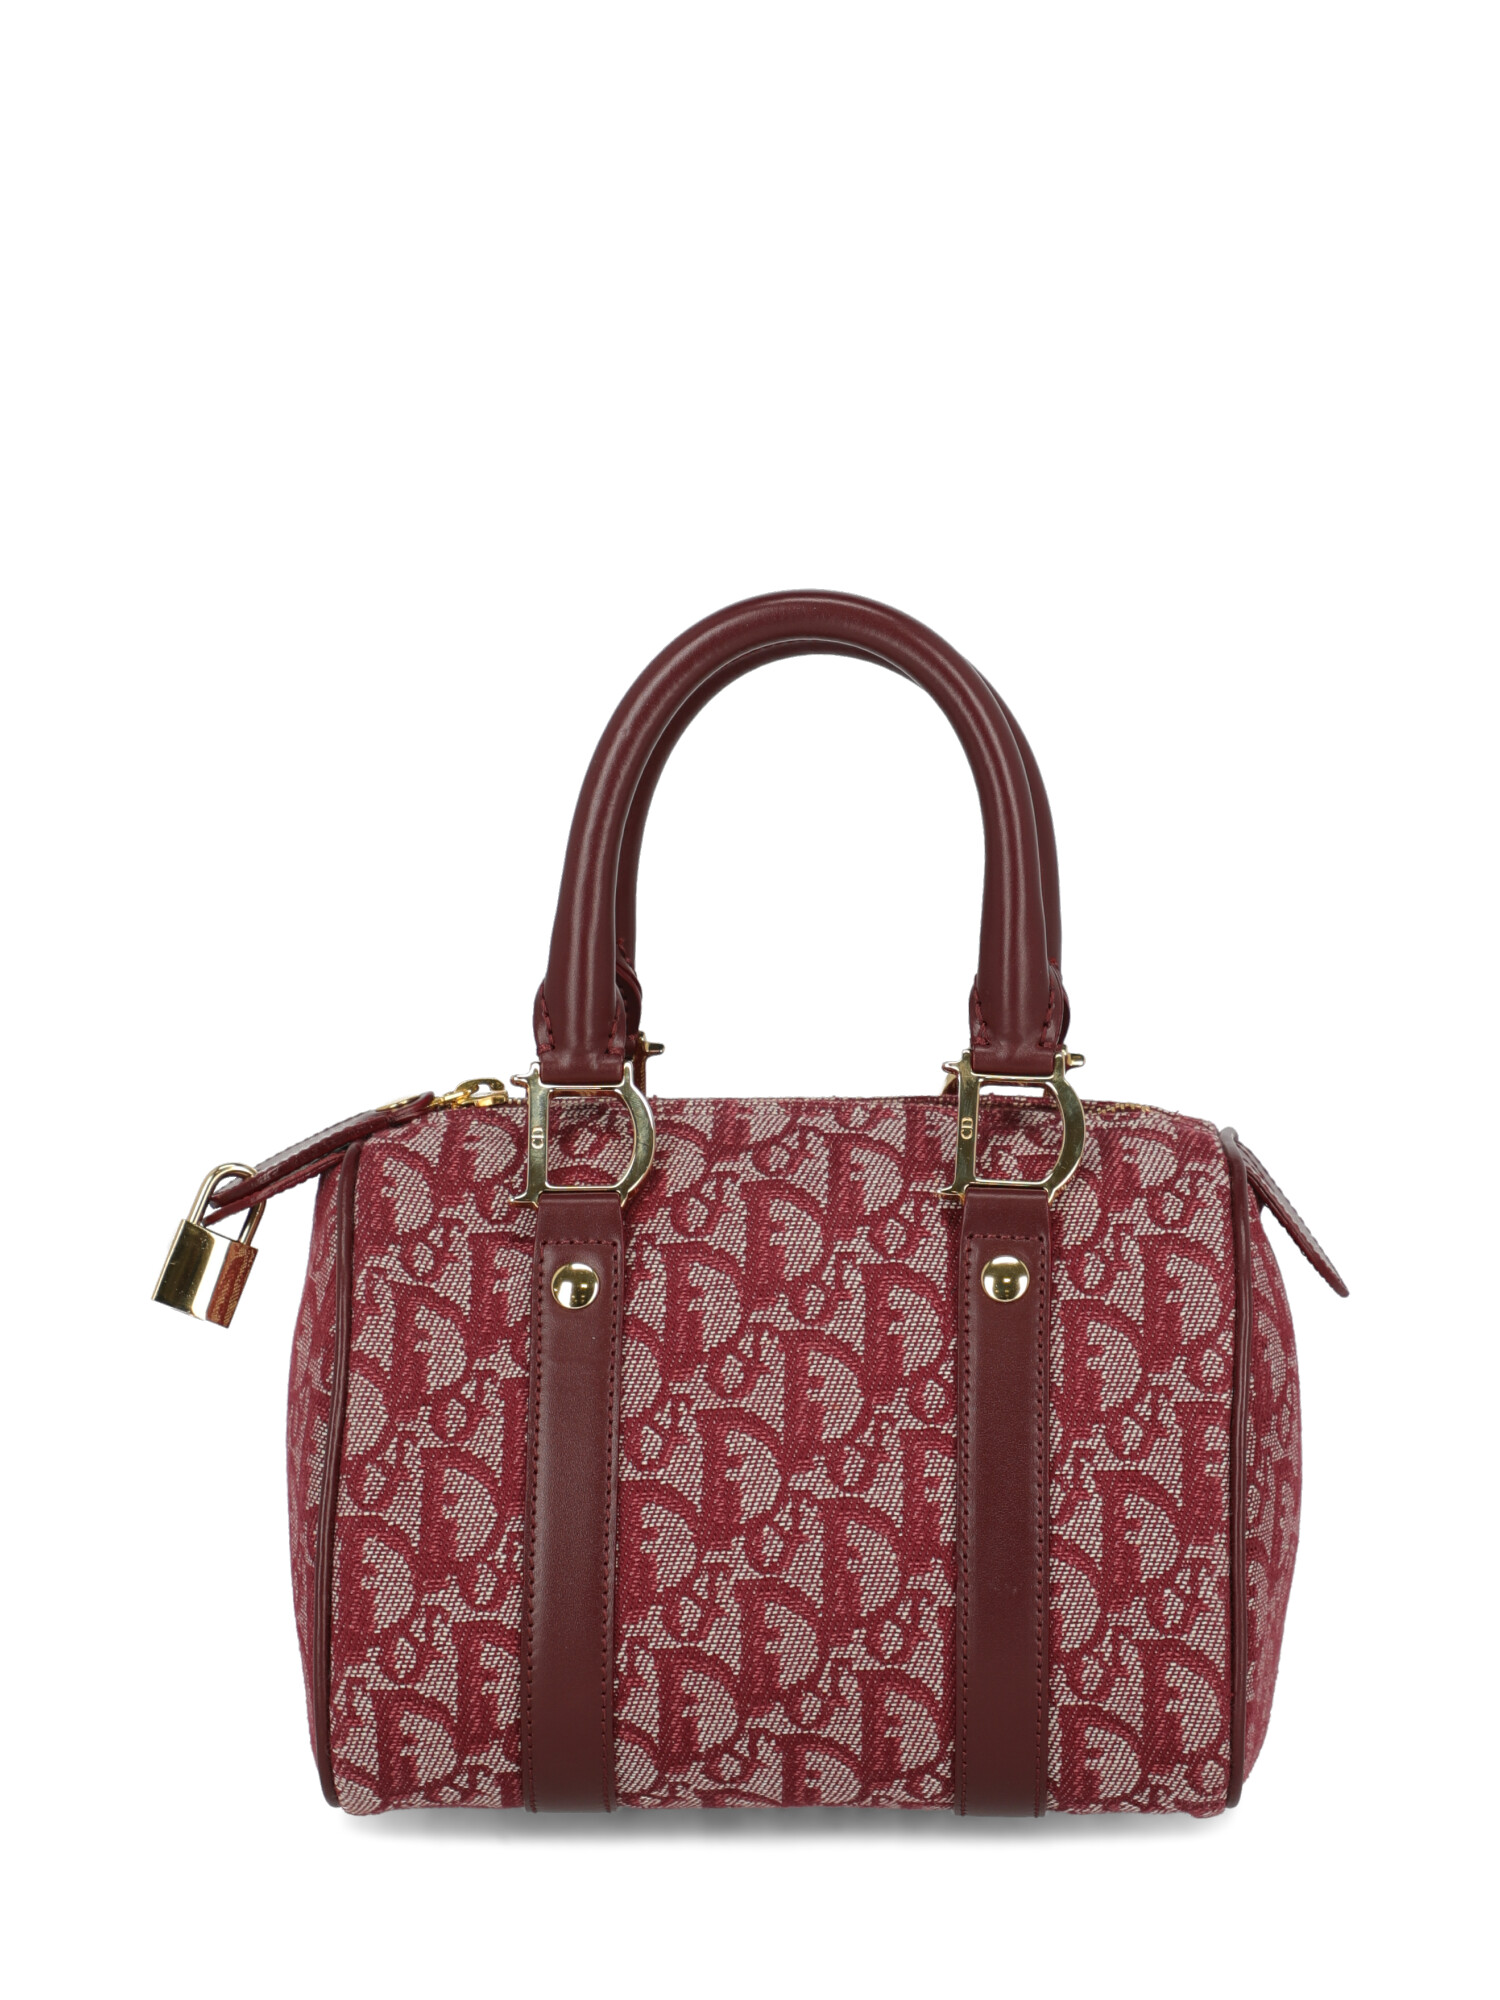 Pre-owned Dior Woman In Burgundy